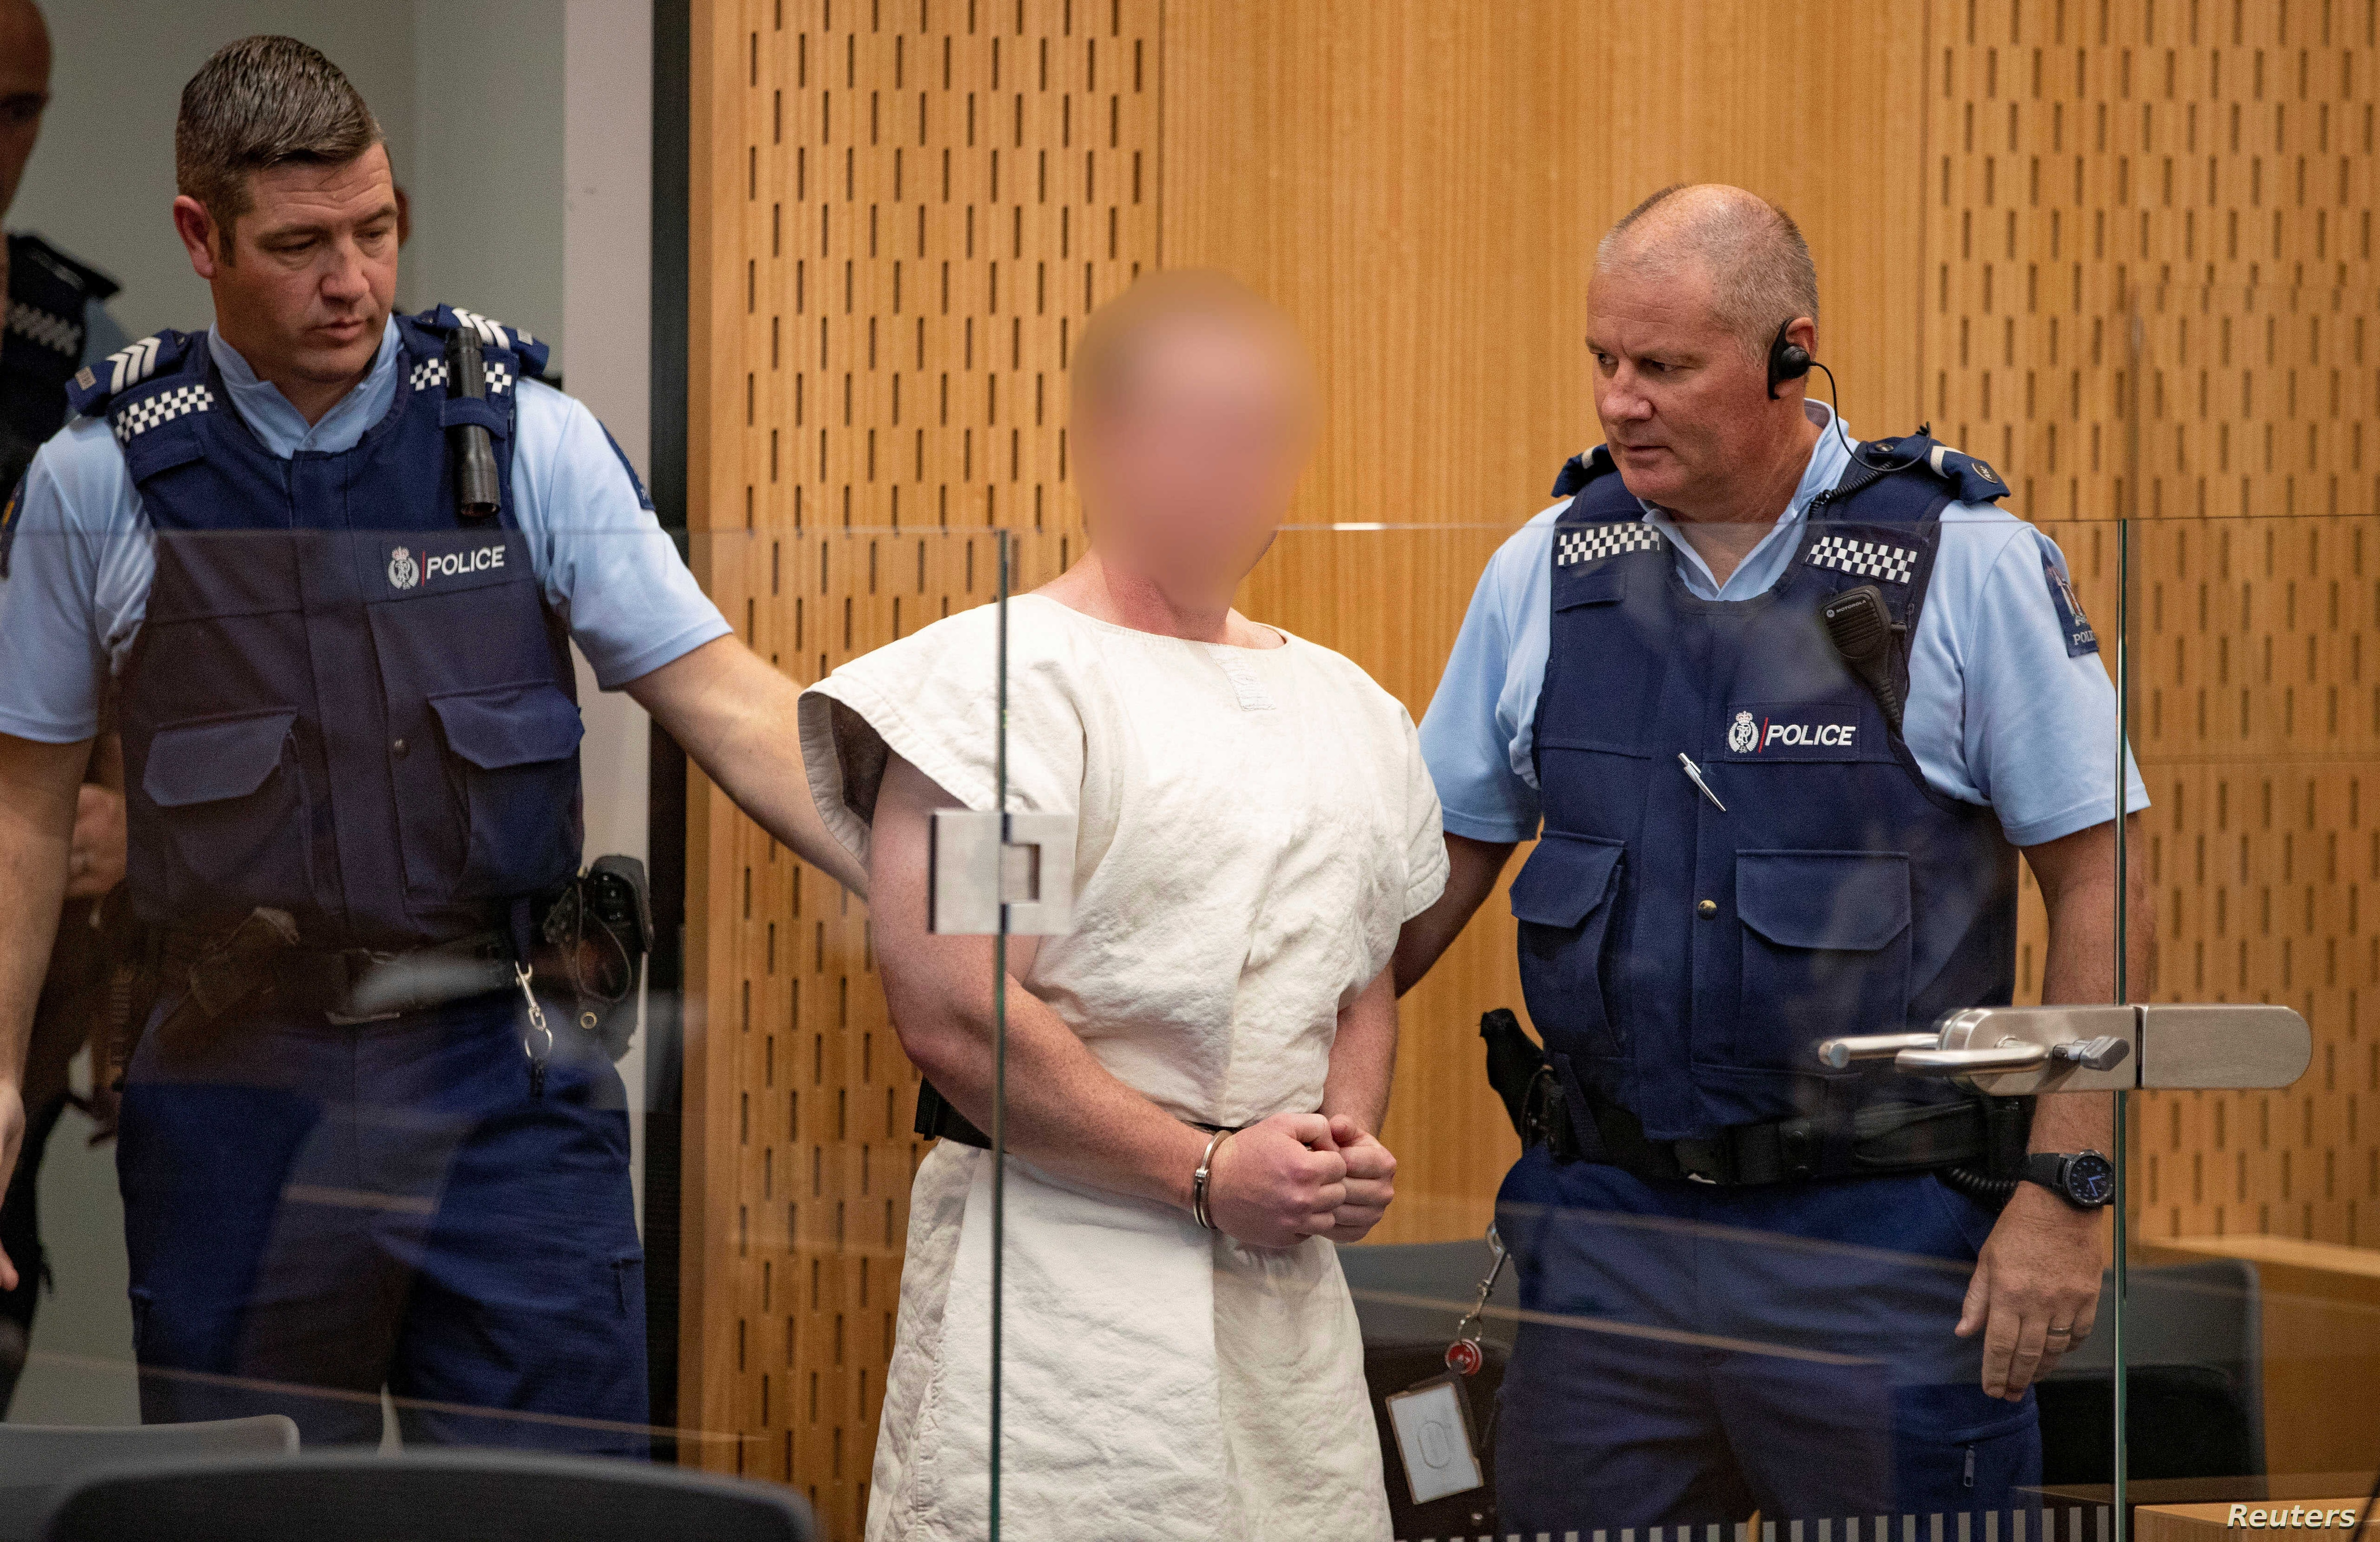 Judge Orders Psychiatric Test For Christchurch Shooting Suspect Voice Of America English